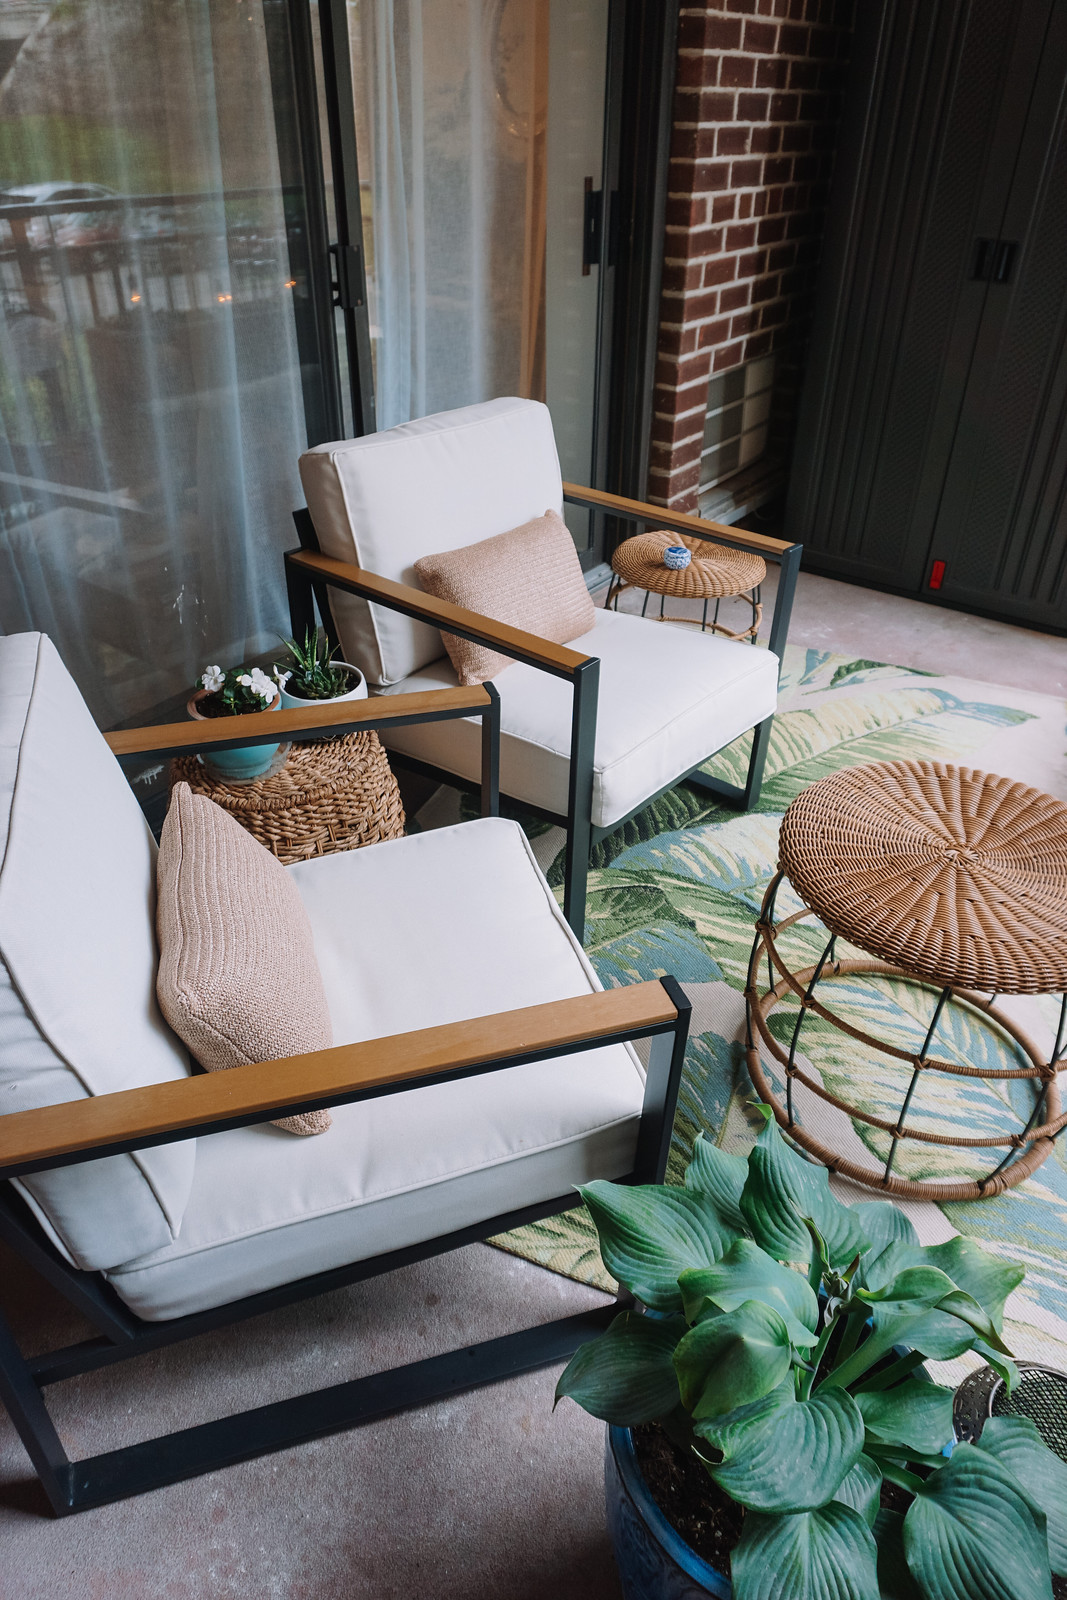 My Apartment Balcony Reveal + More Affordable Outdoor Inspiration   Target Outdoor Furniture   Outdoor Palm Print Rug   Wicker Furniture Inspiration   Outdoor Oasis String Lights   How to Decorate a Small Balcony   Patio Ideas   Deck Inspiration   Outdoor Living Room   Outdoor Decorating Ideas   Terrace   Porch   Patio Renovation   Balcony Remodel